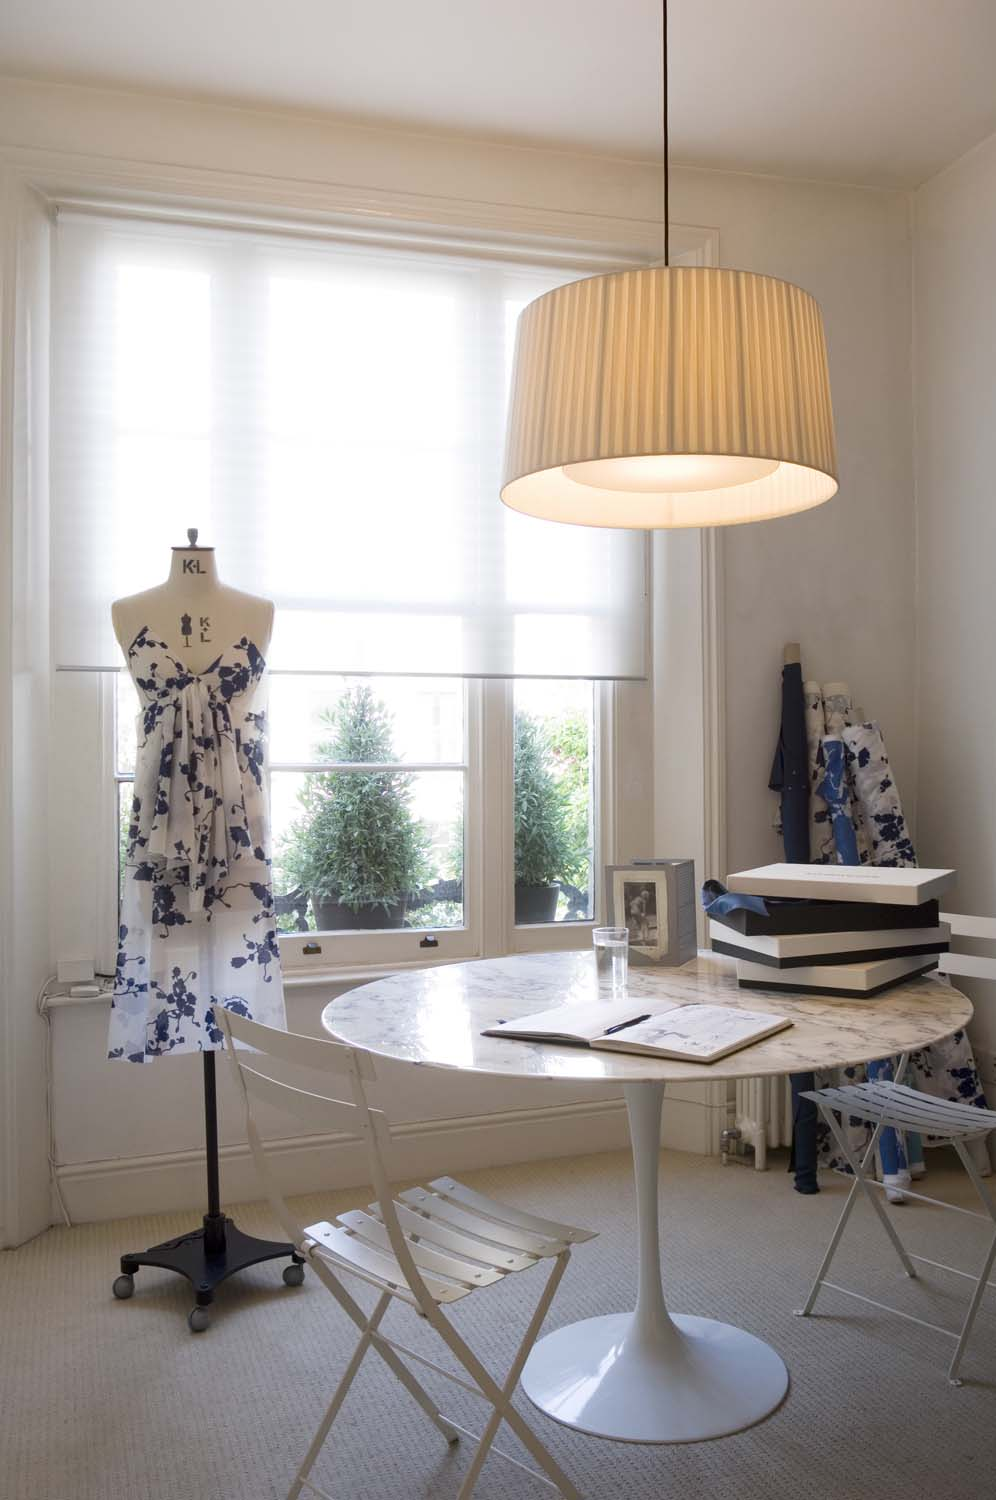 Notting hill live-work unit of London fashion designer